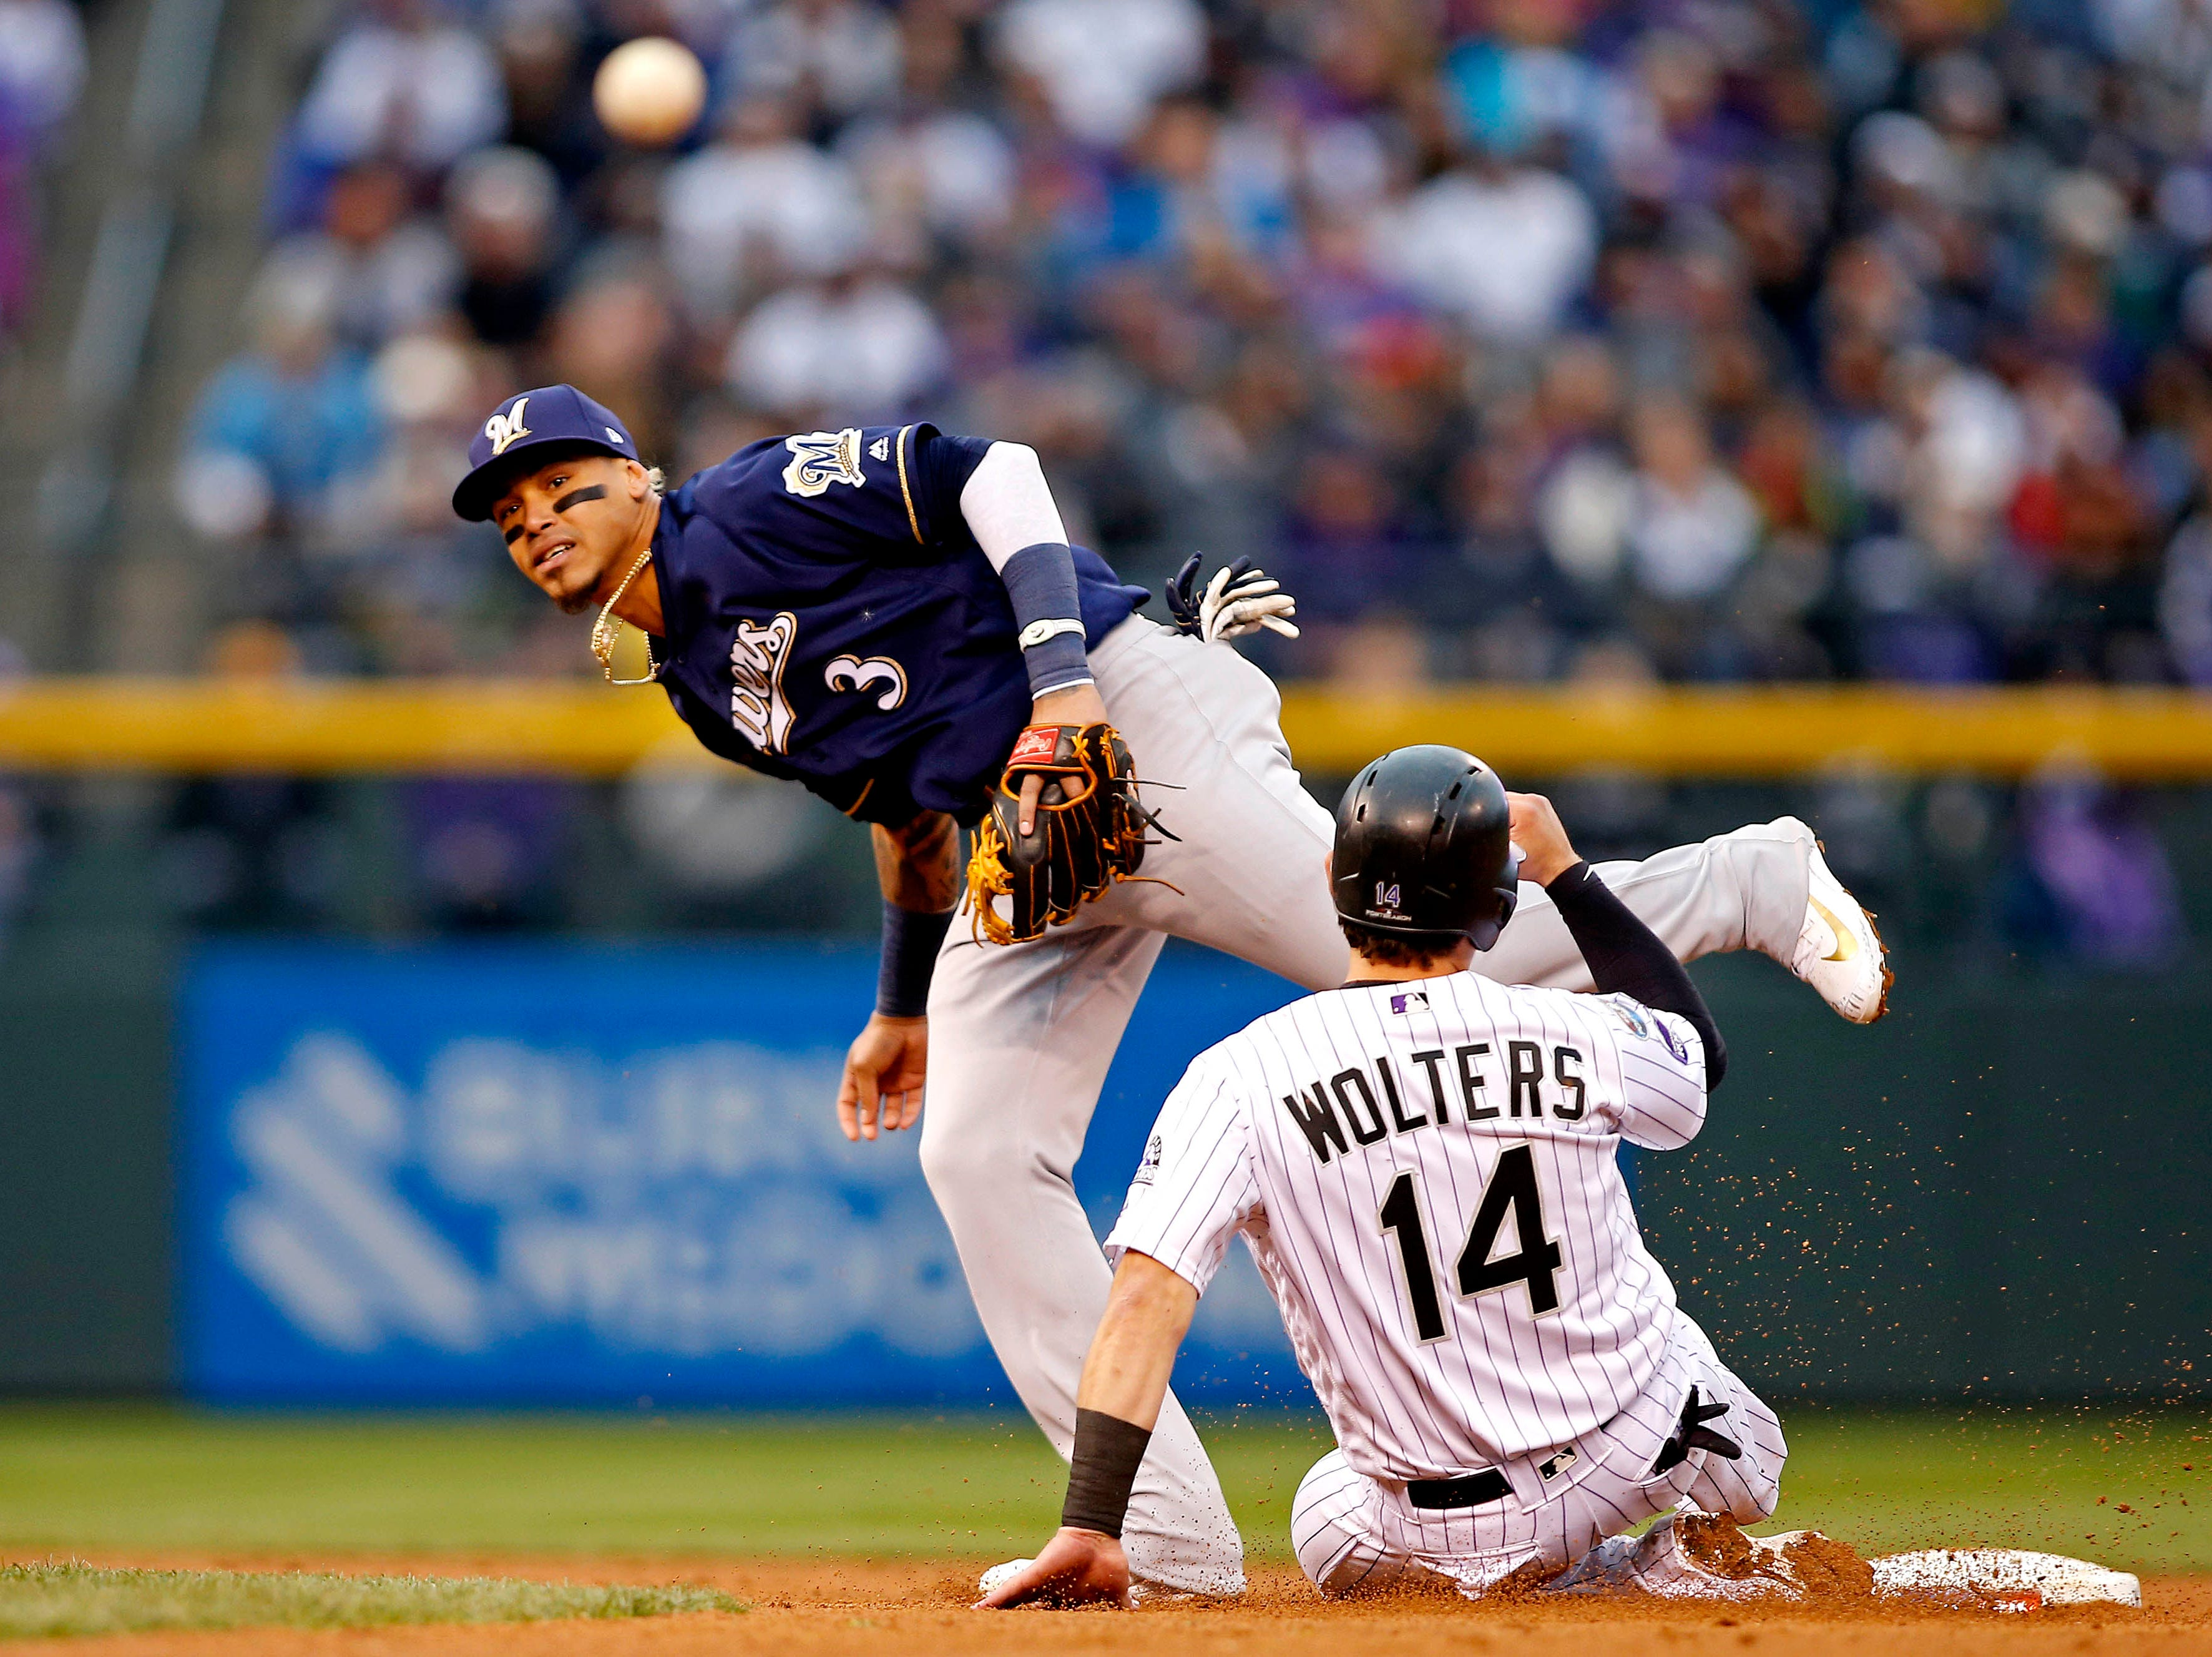 NLDS Game 3: Brewers shortstop Orlando Arcia forces out Rockies catcher Tony Wolters and throws to first in the fifth inning.